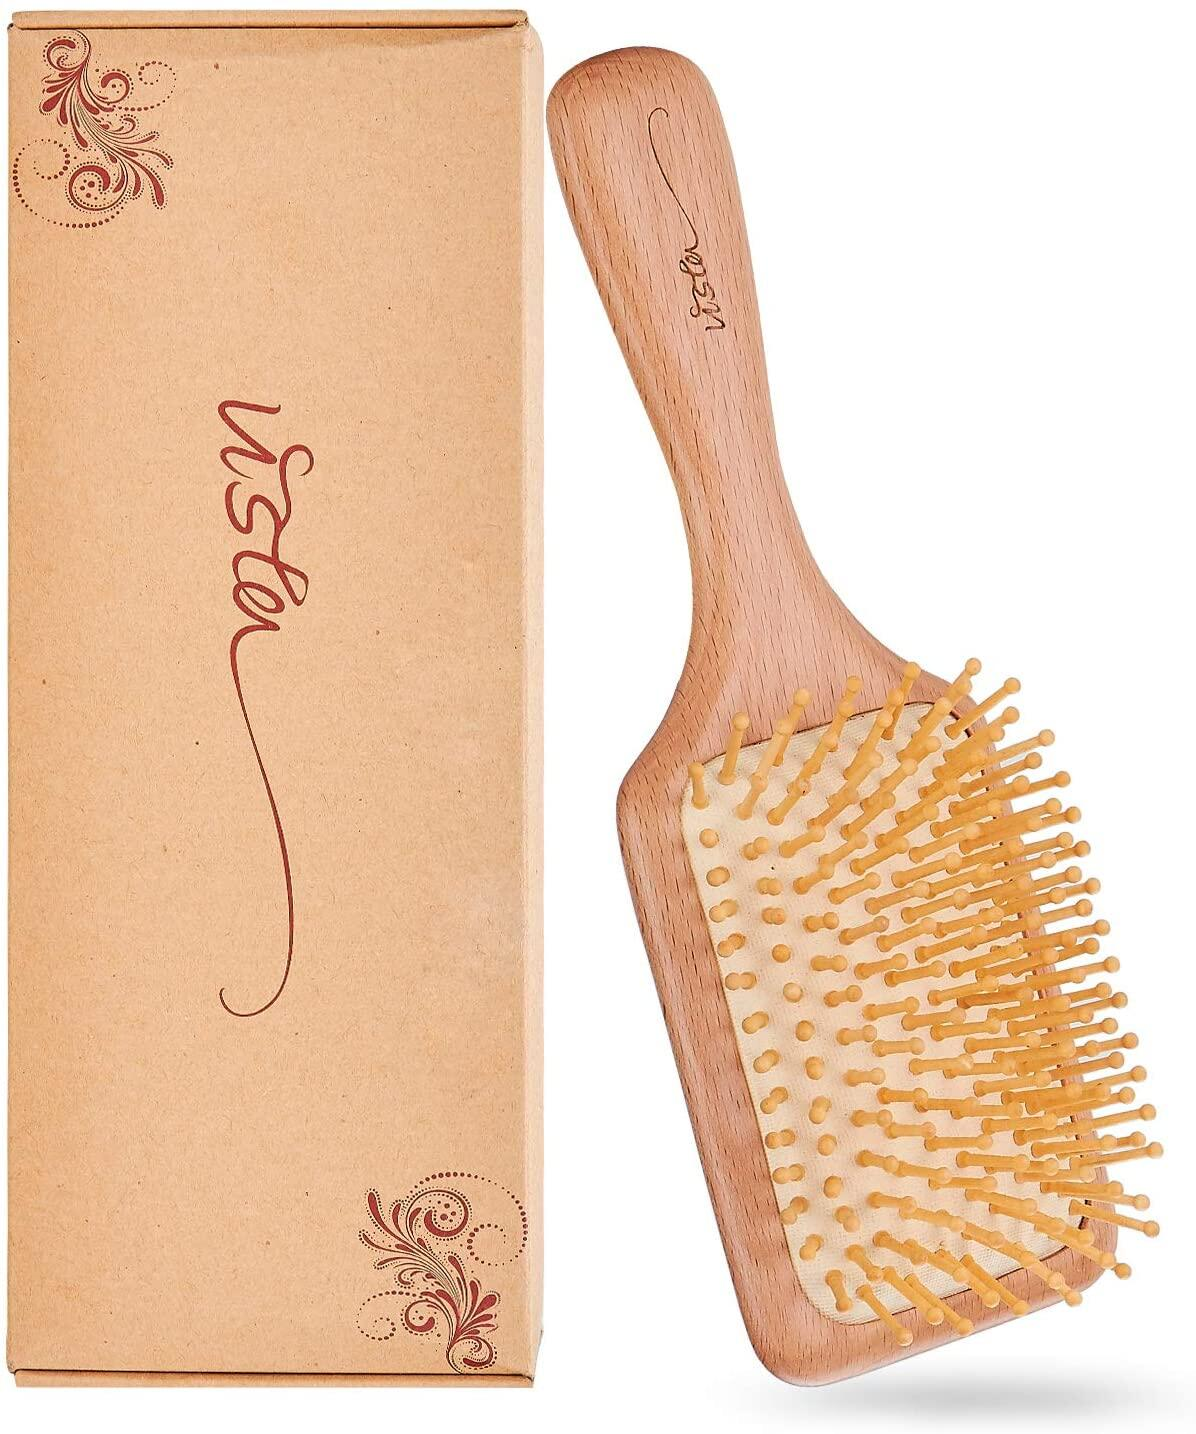 【coming soon】vista hair brush, wooden hairbrush for women anti static massage prevent hair loss round hairbrush 【coming soon】vista hair brush wooden hairbrush for women anti static massage prevent hair loss round hairbrush hair brush